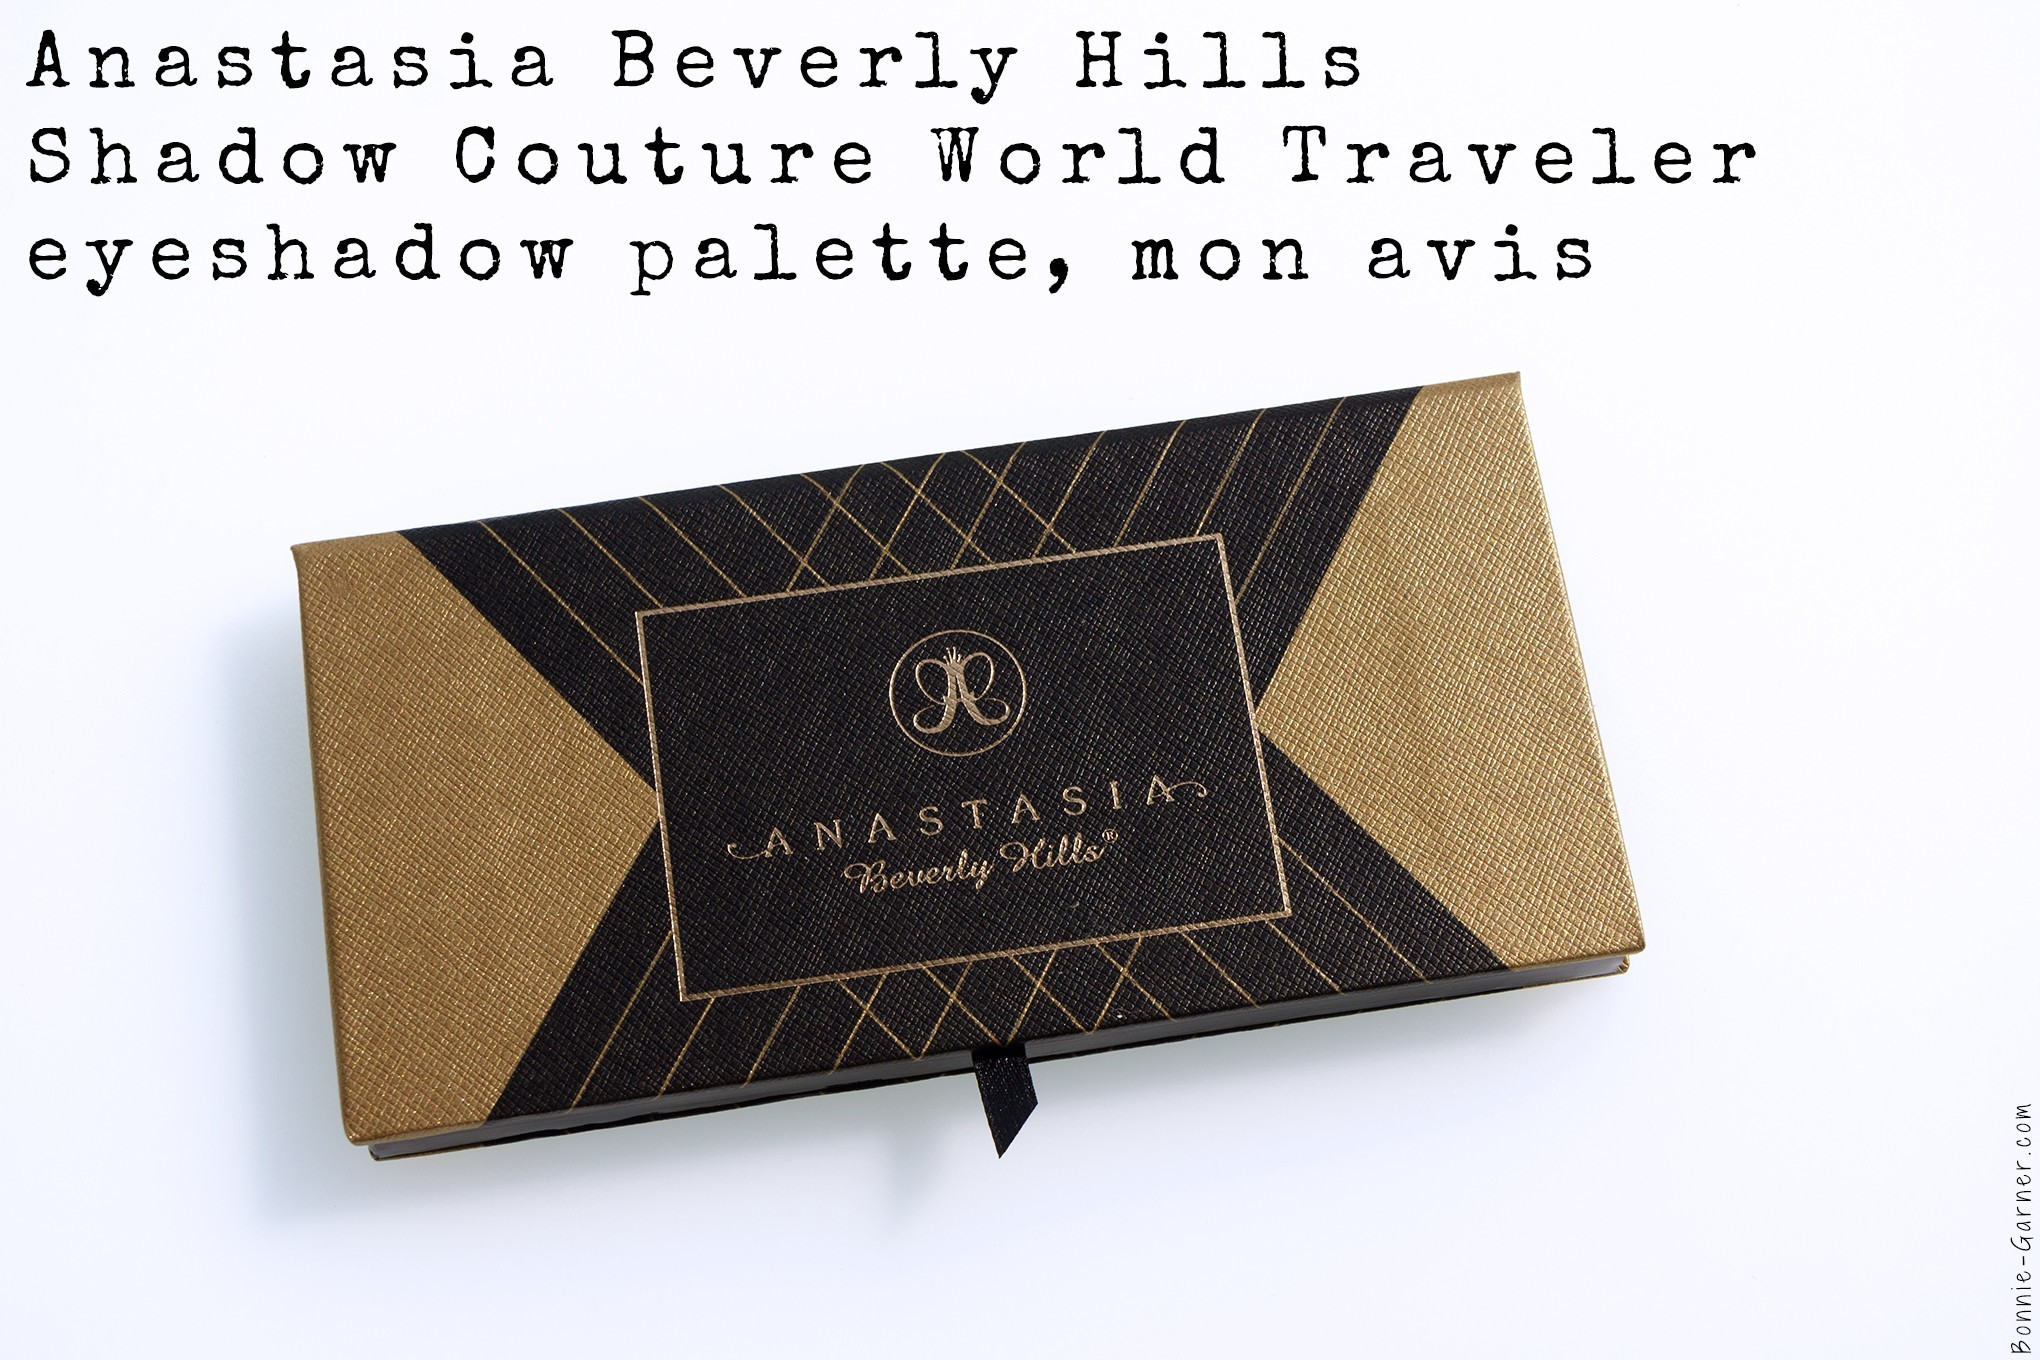 Anastasia Beverly Hills Shadow Couture World Traveler eyeshadow palette, mon avis